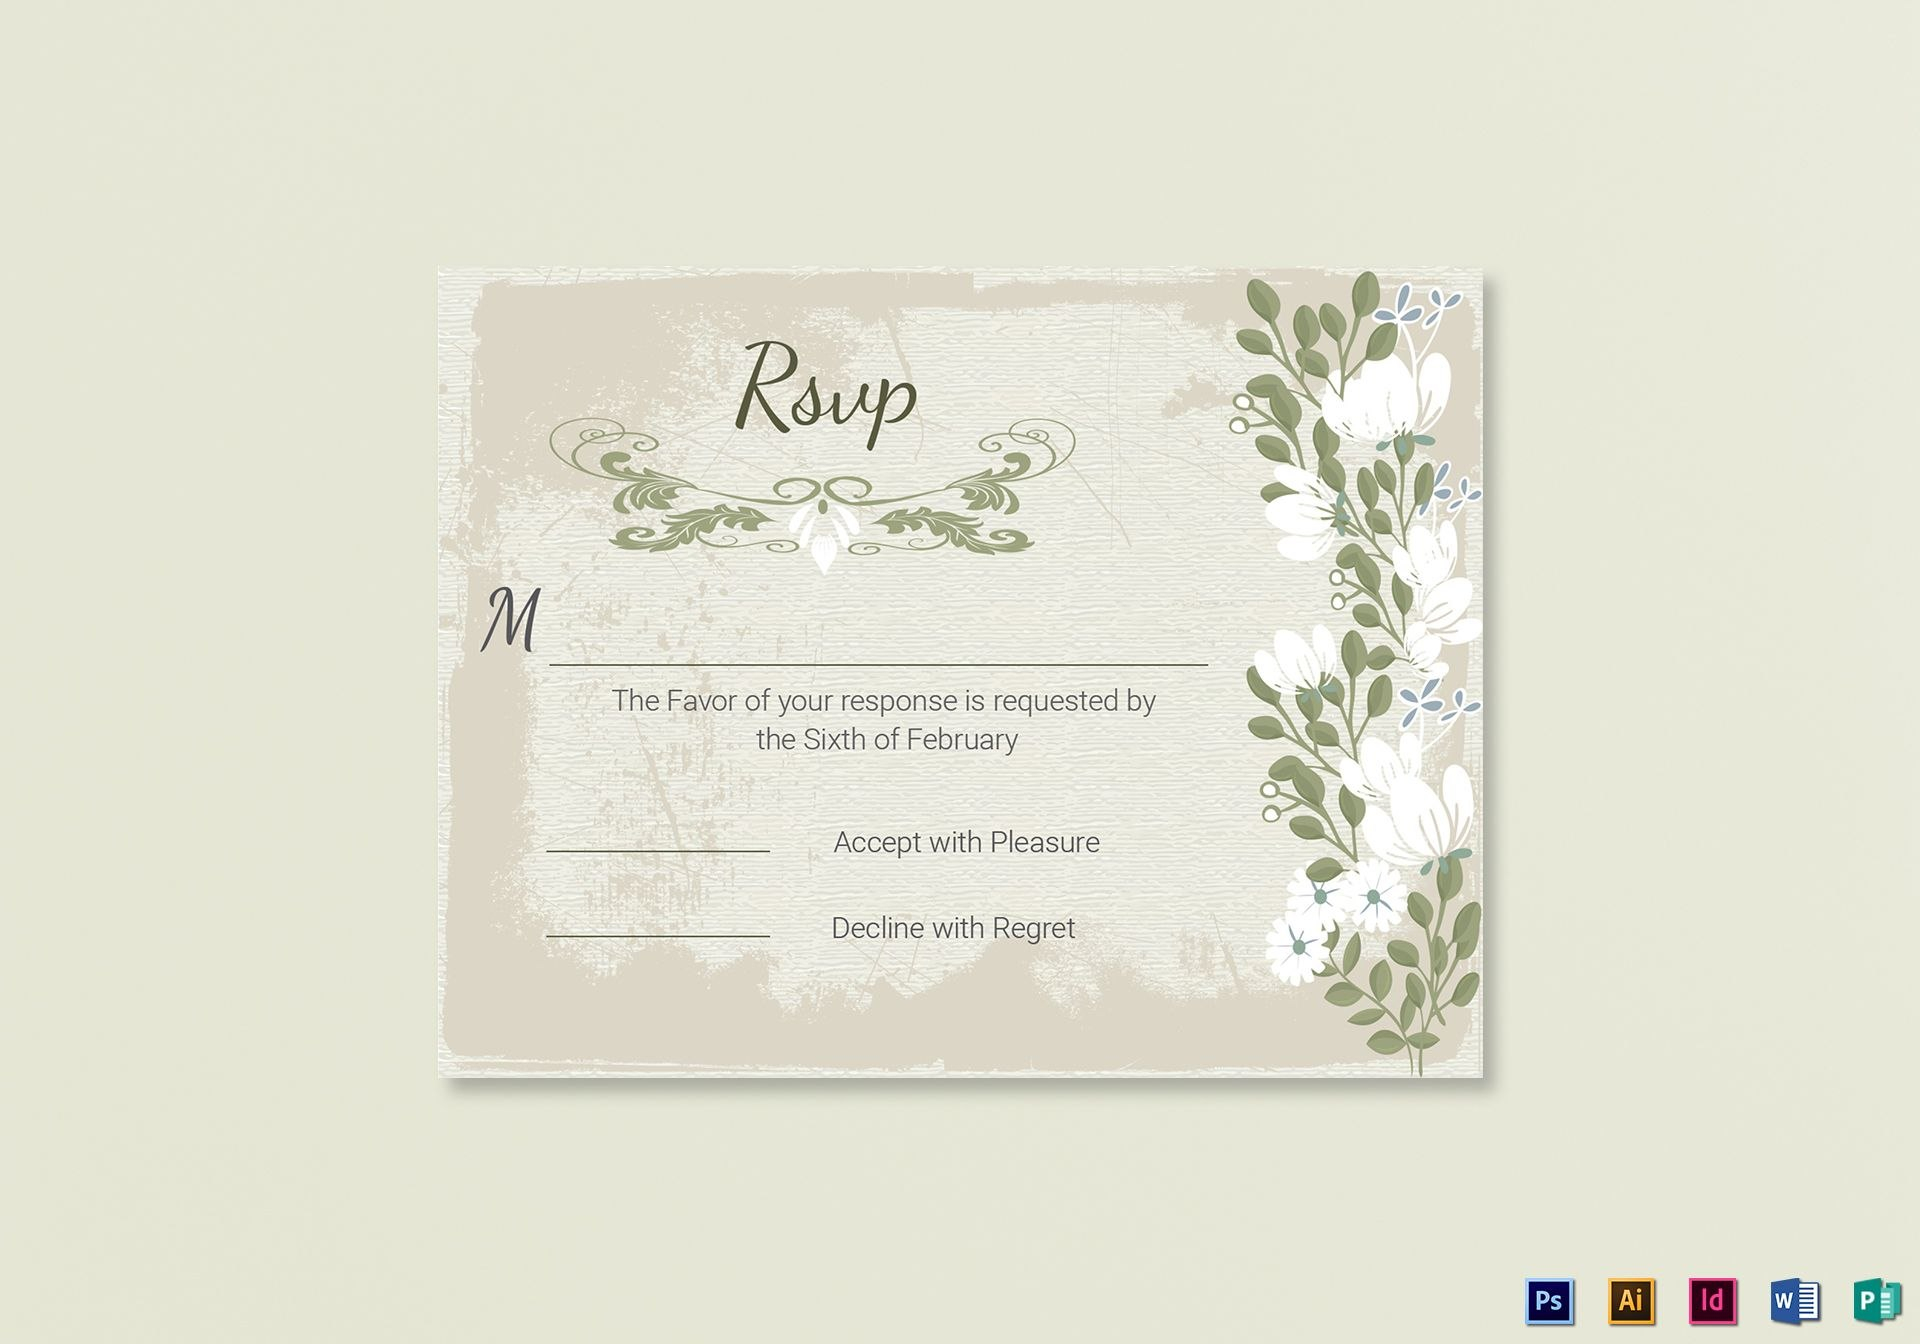 Vintage Wedding Rsvp Card Template In Psd Word Publisher Pertaining To Template For Rsvp Cards For Wedding